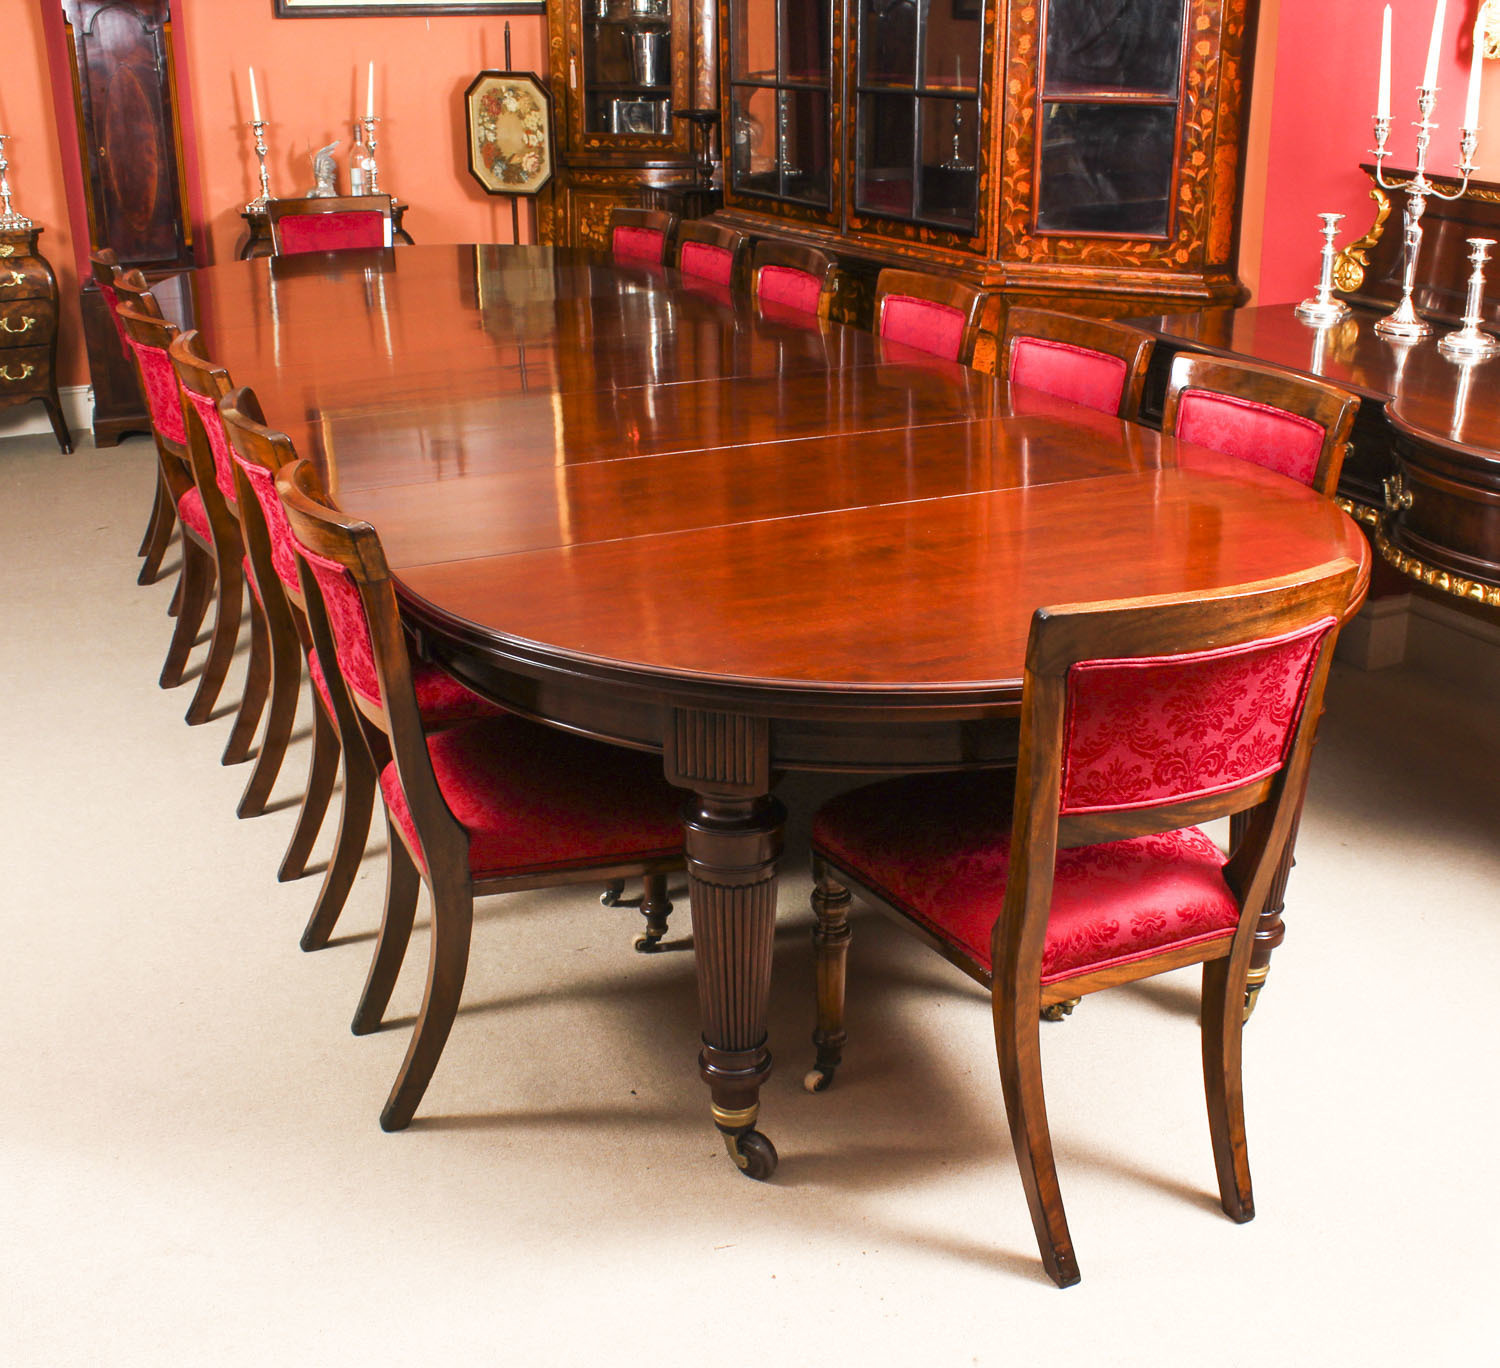 Antique Victorian Circular Extending Dining Table 14 Chairs 19th C